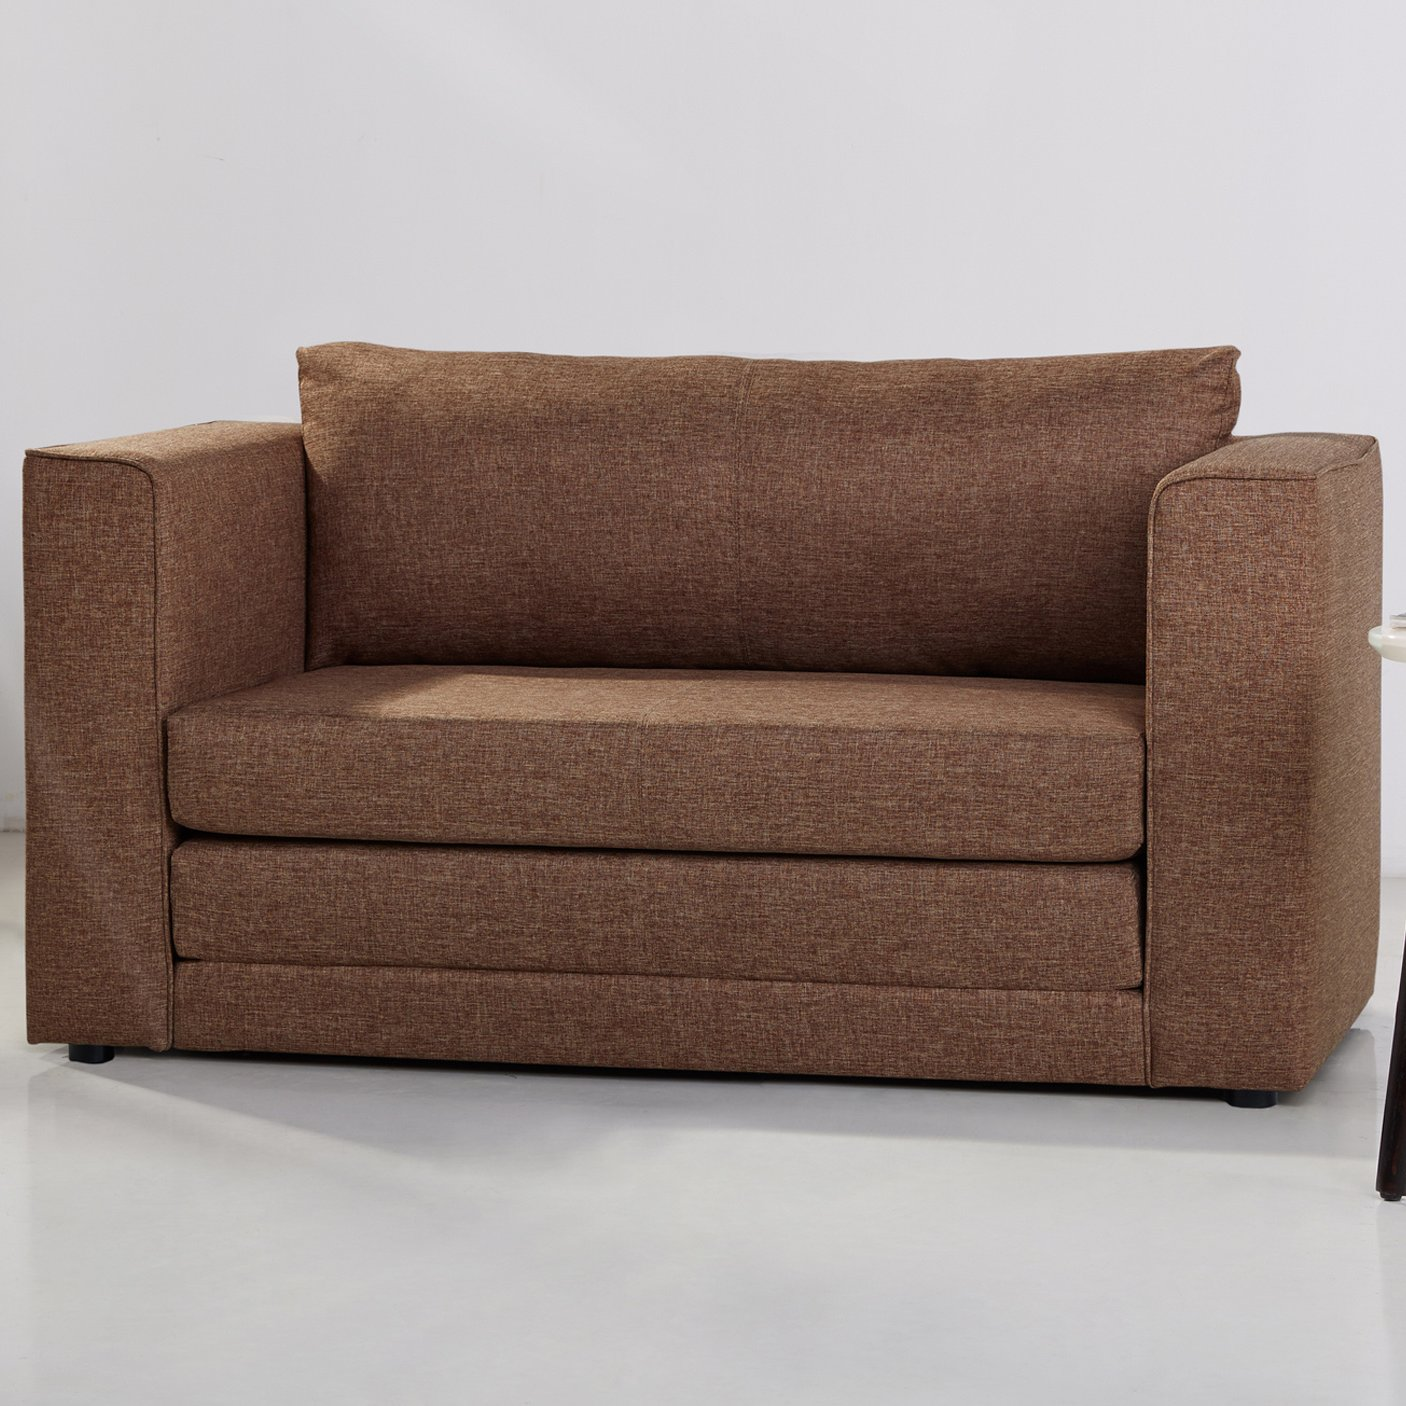 Overstock Couches | Loveseat Sleeper | Loveseat Sleeper Sofa